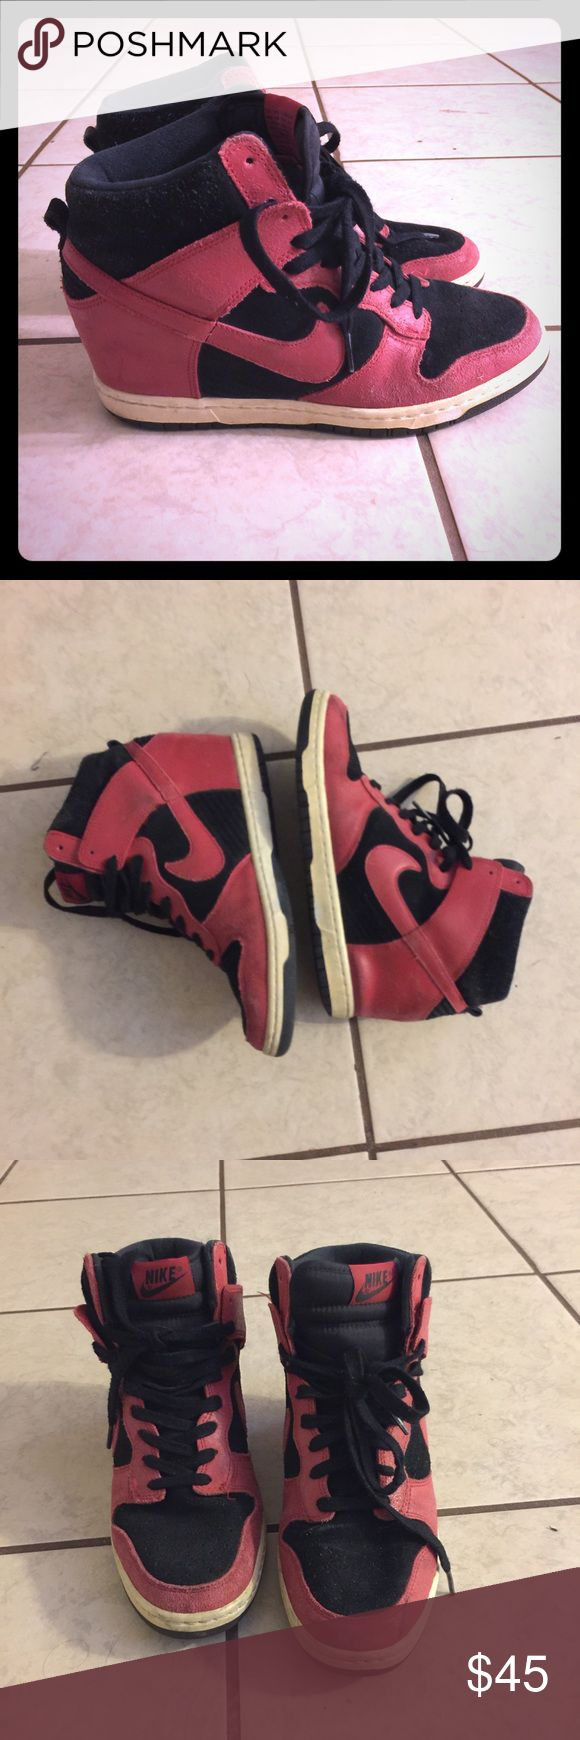 Nike dunk sky high shoes. size 11 Wedge shoes, no rips or tears. Perfect condition. Perfect with any outfit. I am moving, i need them gone asap Nike Shoes Sneakers